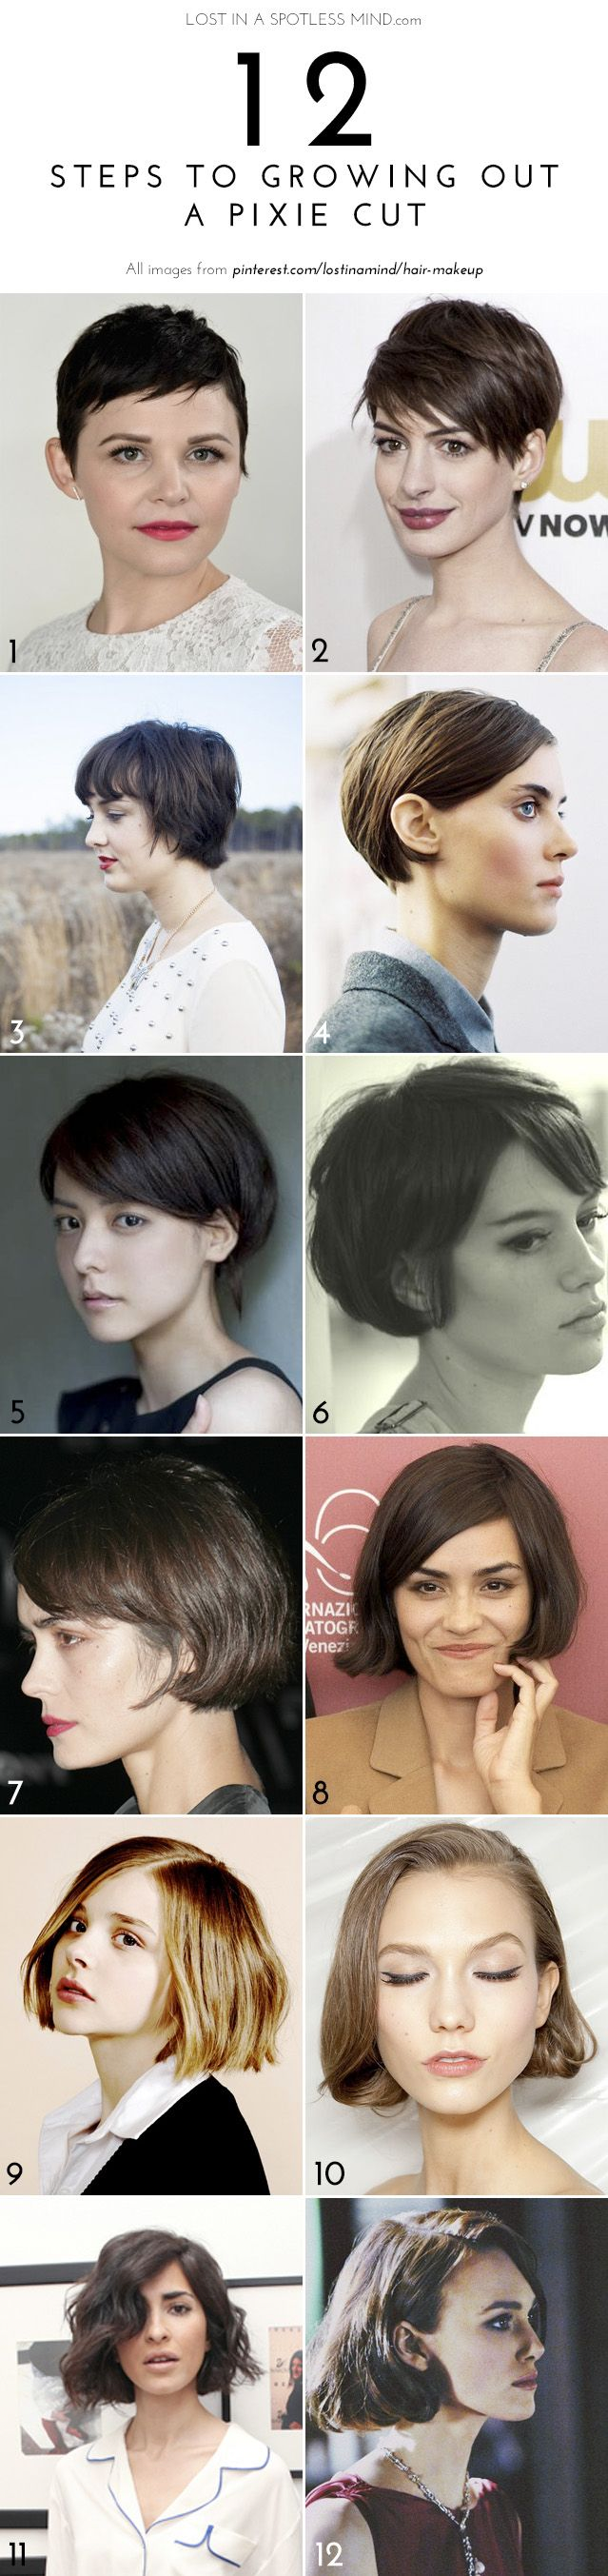 The growing out a pixie plan | My goal is #4. But then she has one length ALL-OVER & I want layers in the back and top.